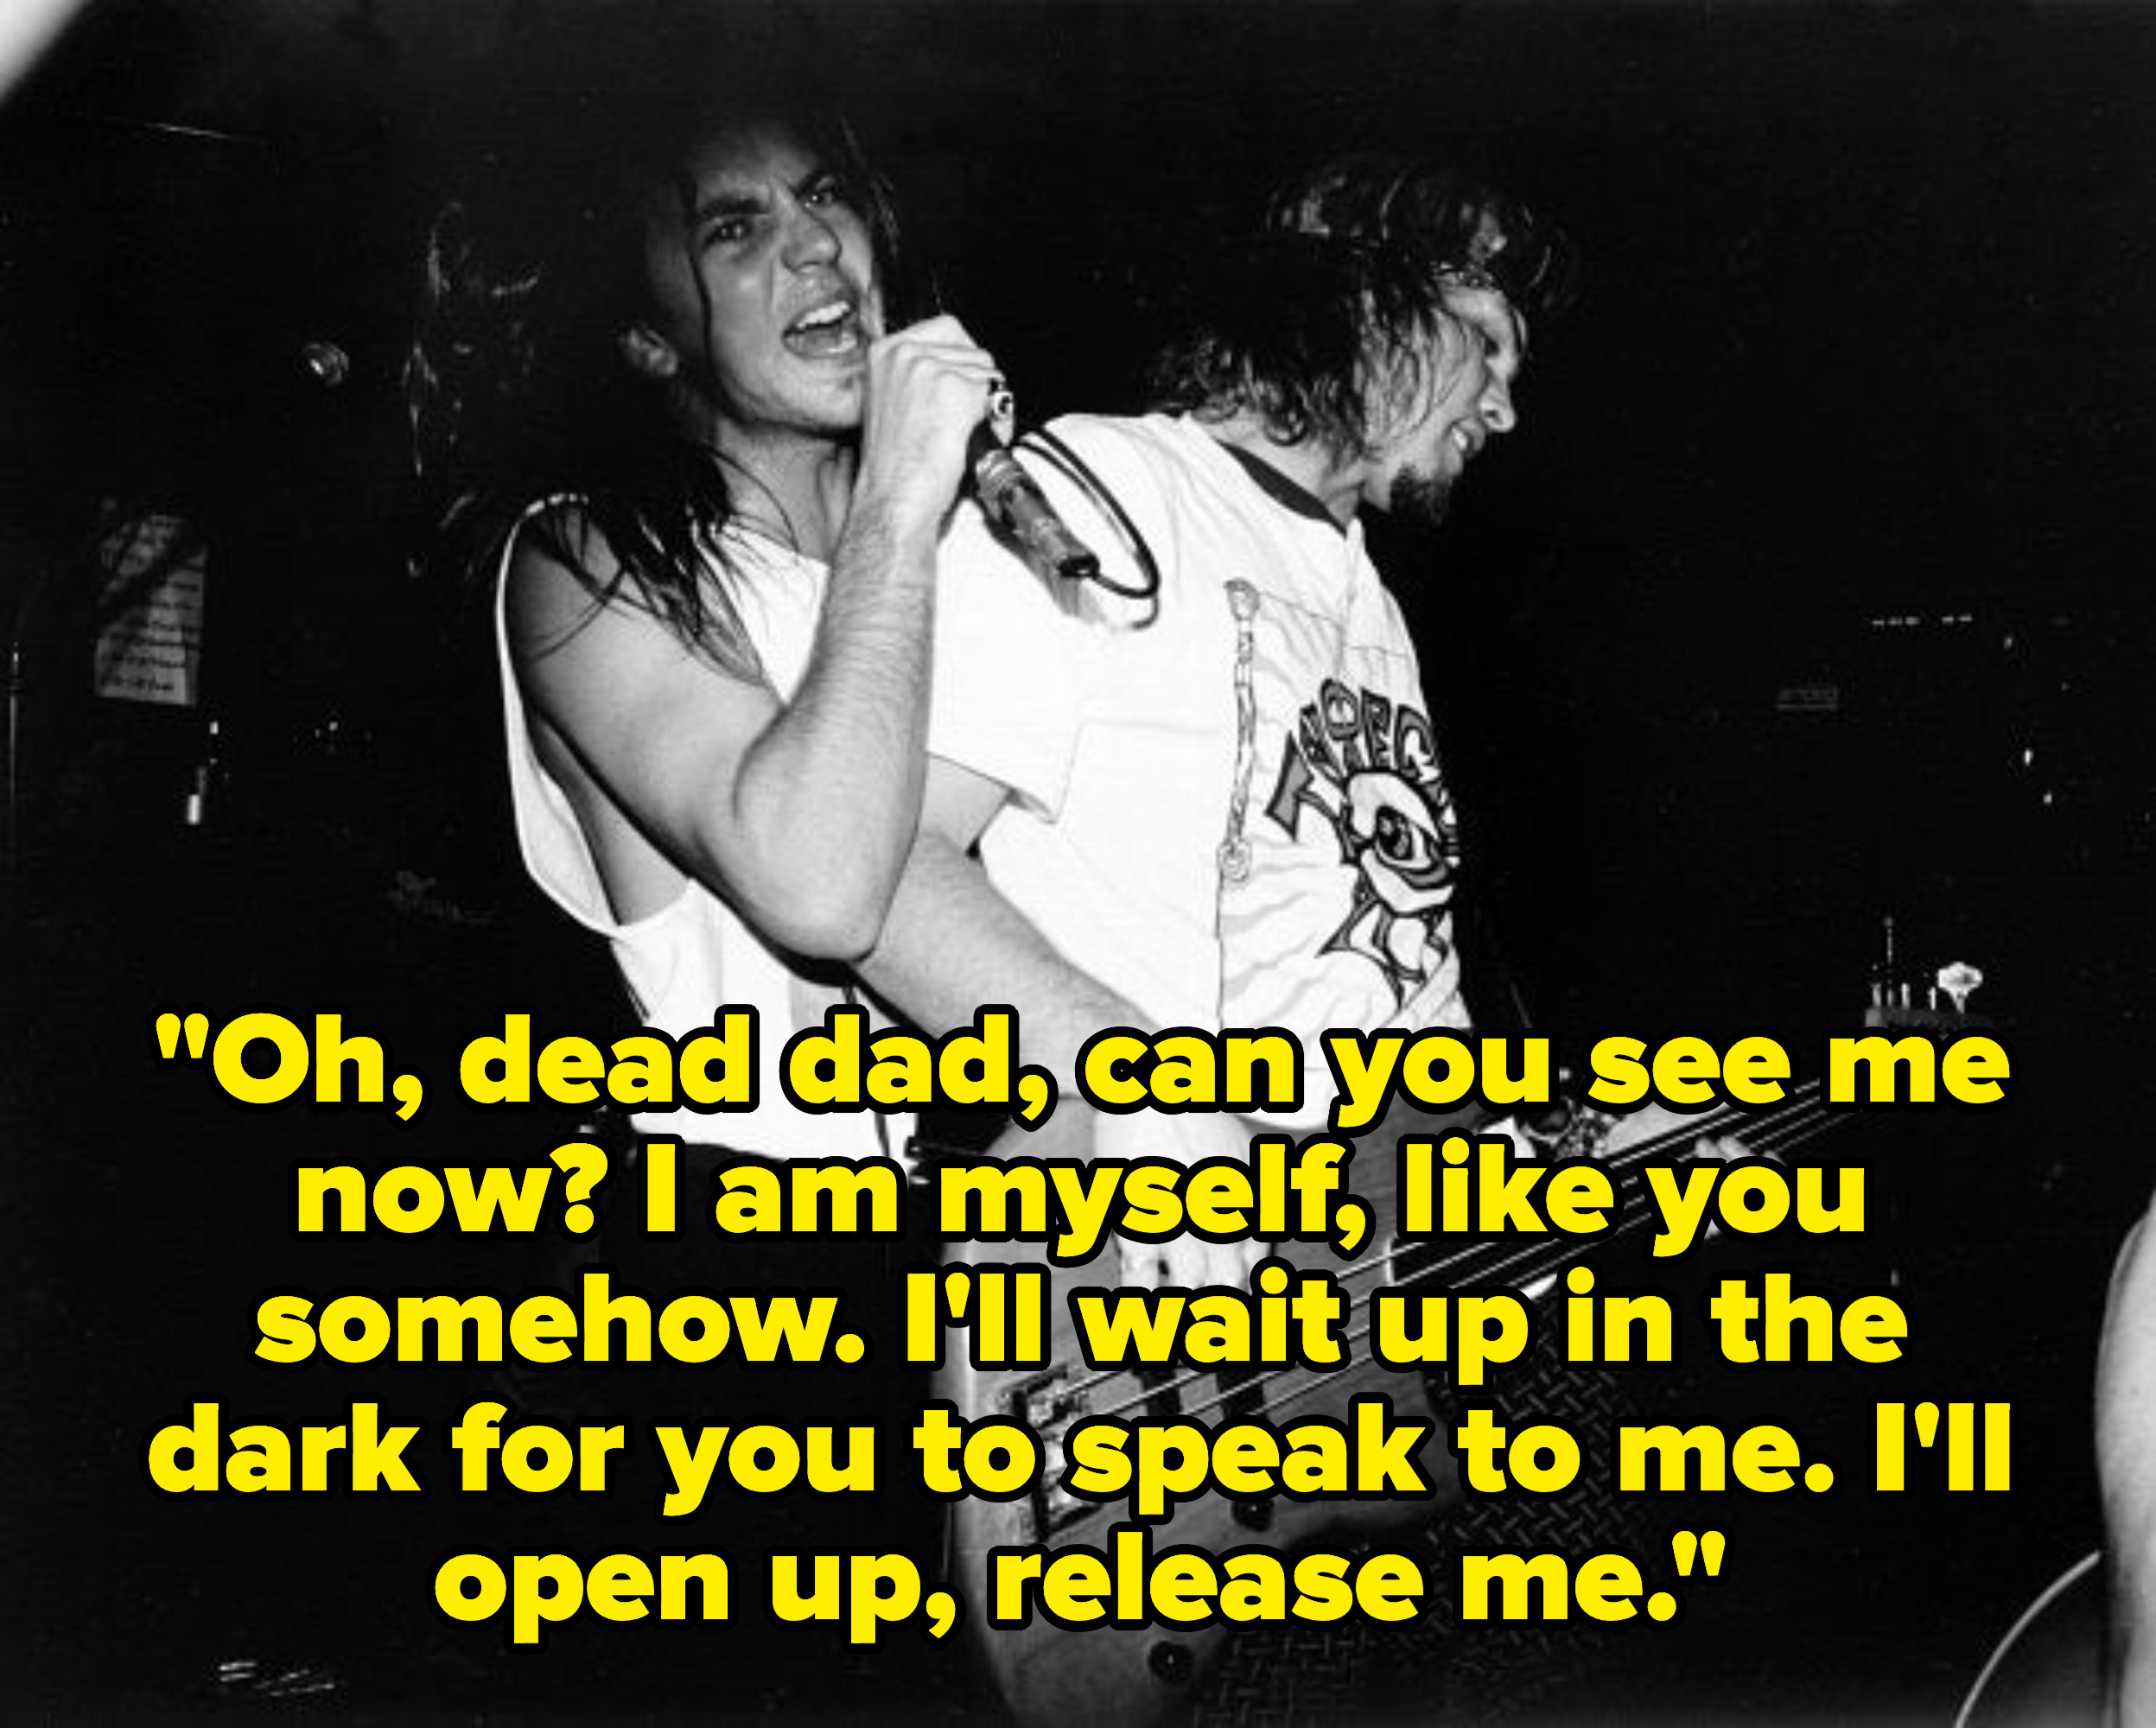 Lyrics: Oh, dead dad, can you see me now? I am myself, like you somehow. I'll wait up in the dark for you to speak to me. I'll open up, release me